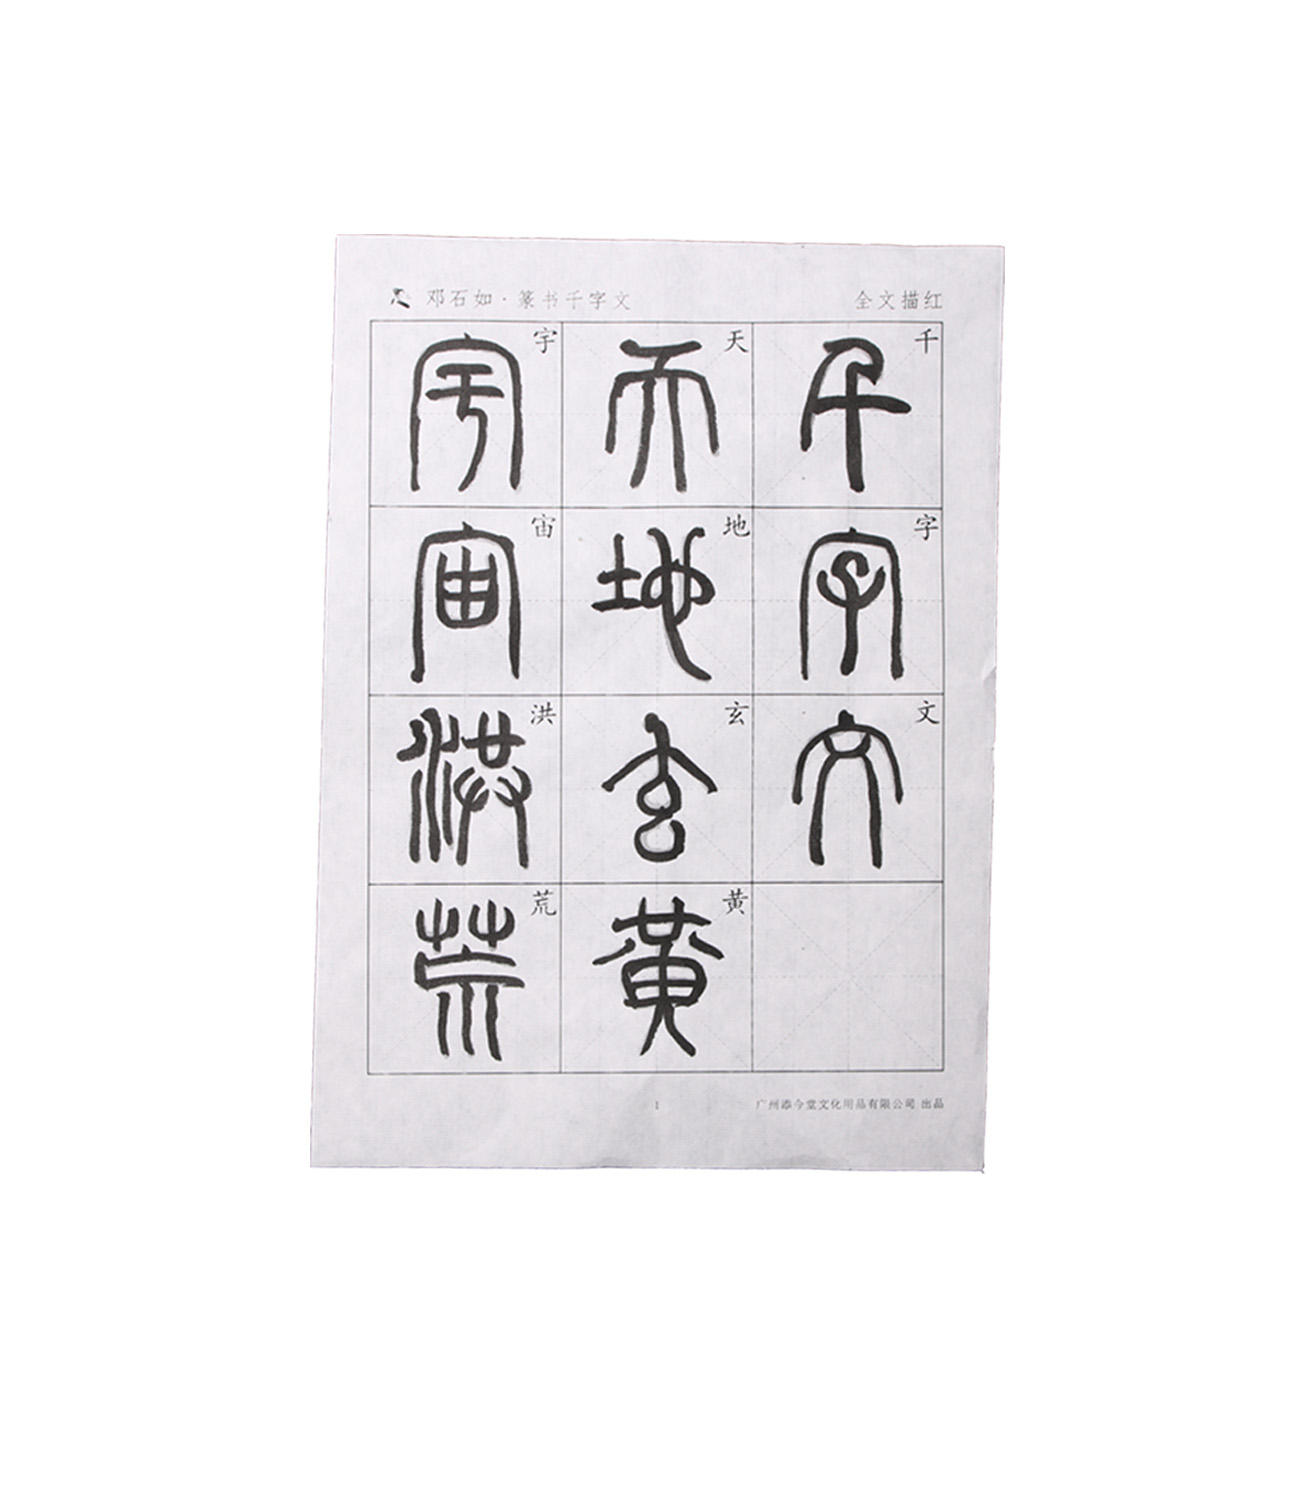 Chinese Calligraphy A4 Size Tracing Writing Xuan Paper Sheets for Beginners